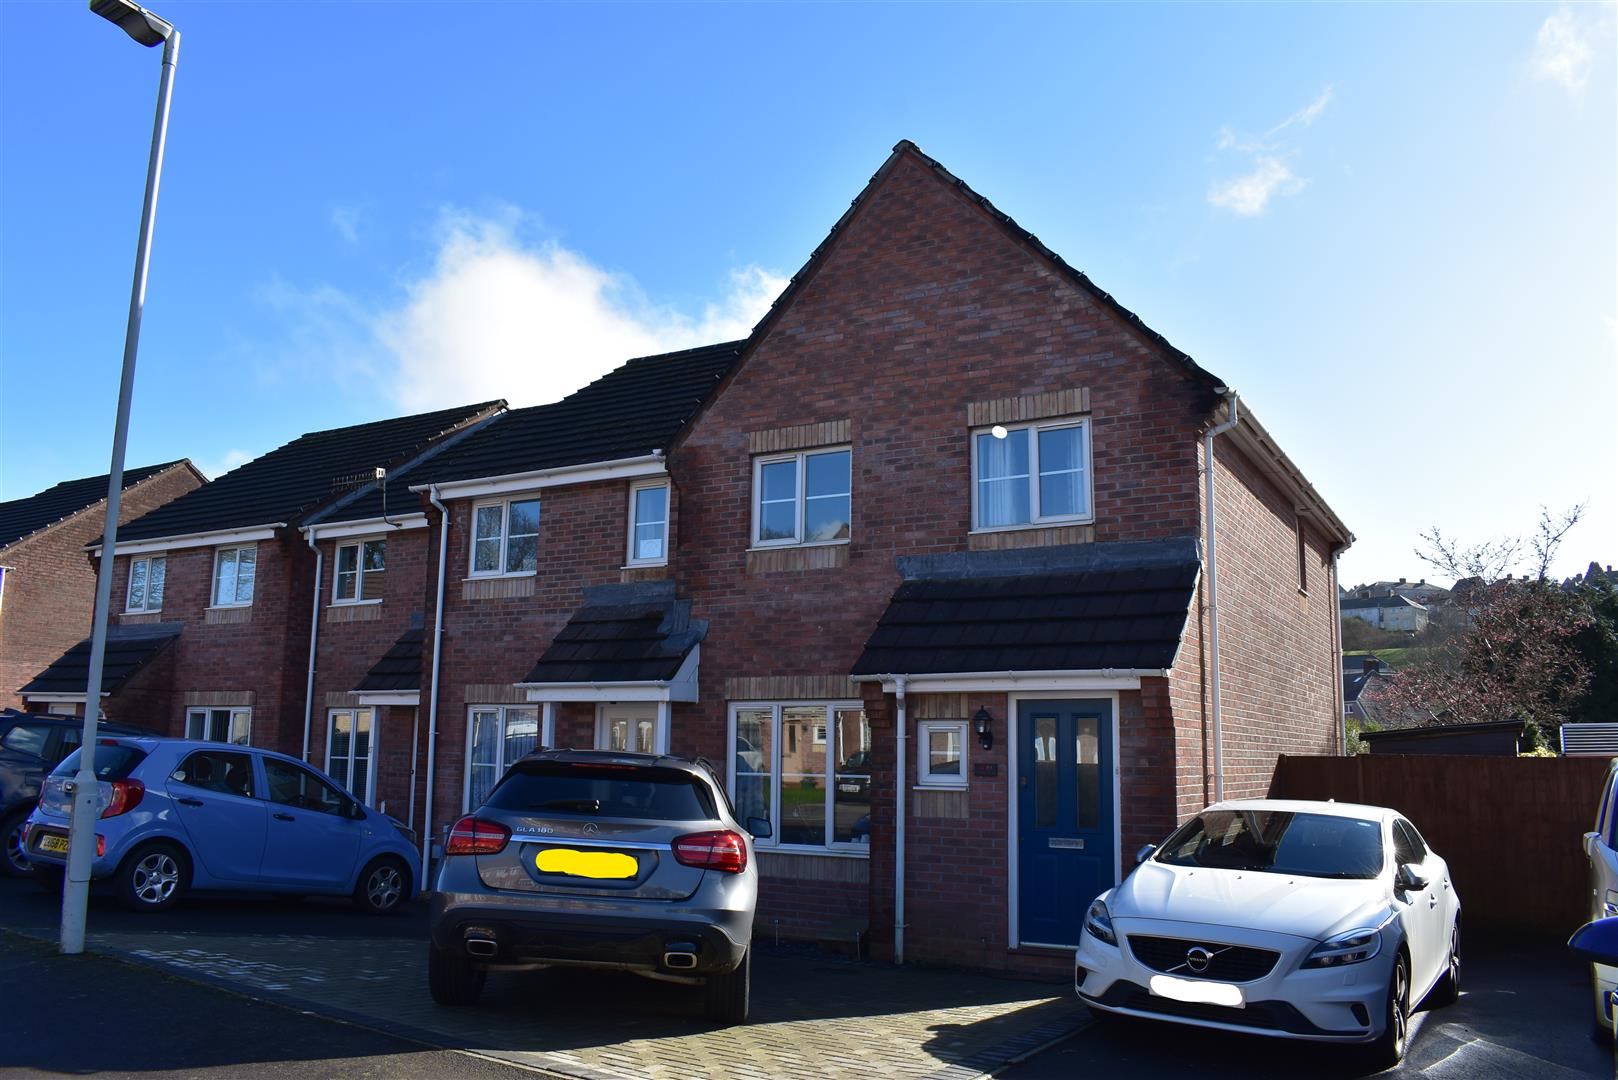 Eastfield Close, Townhill, Swansea, SA1 6SG